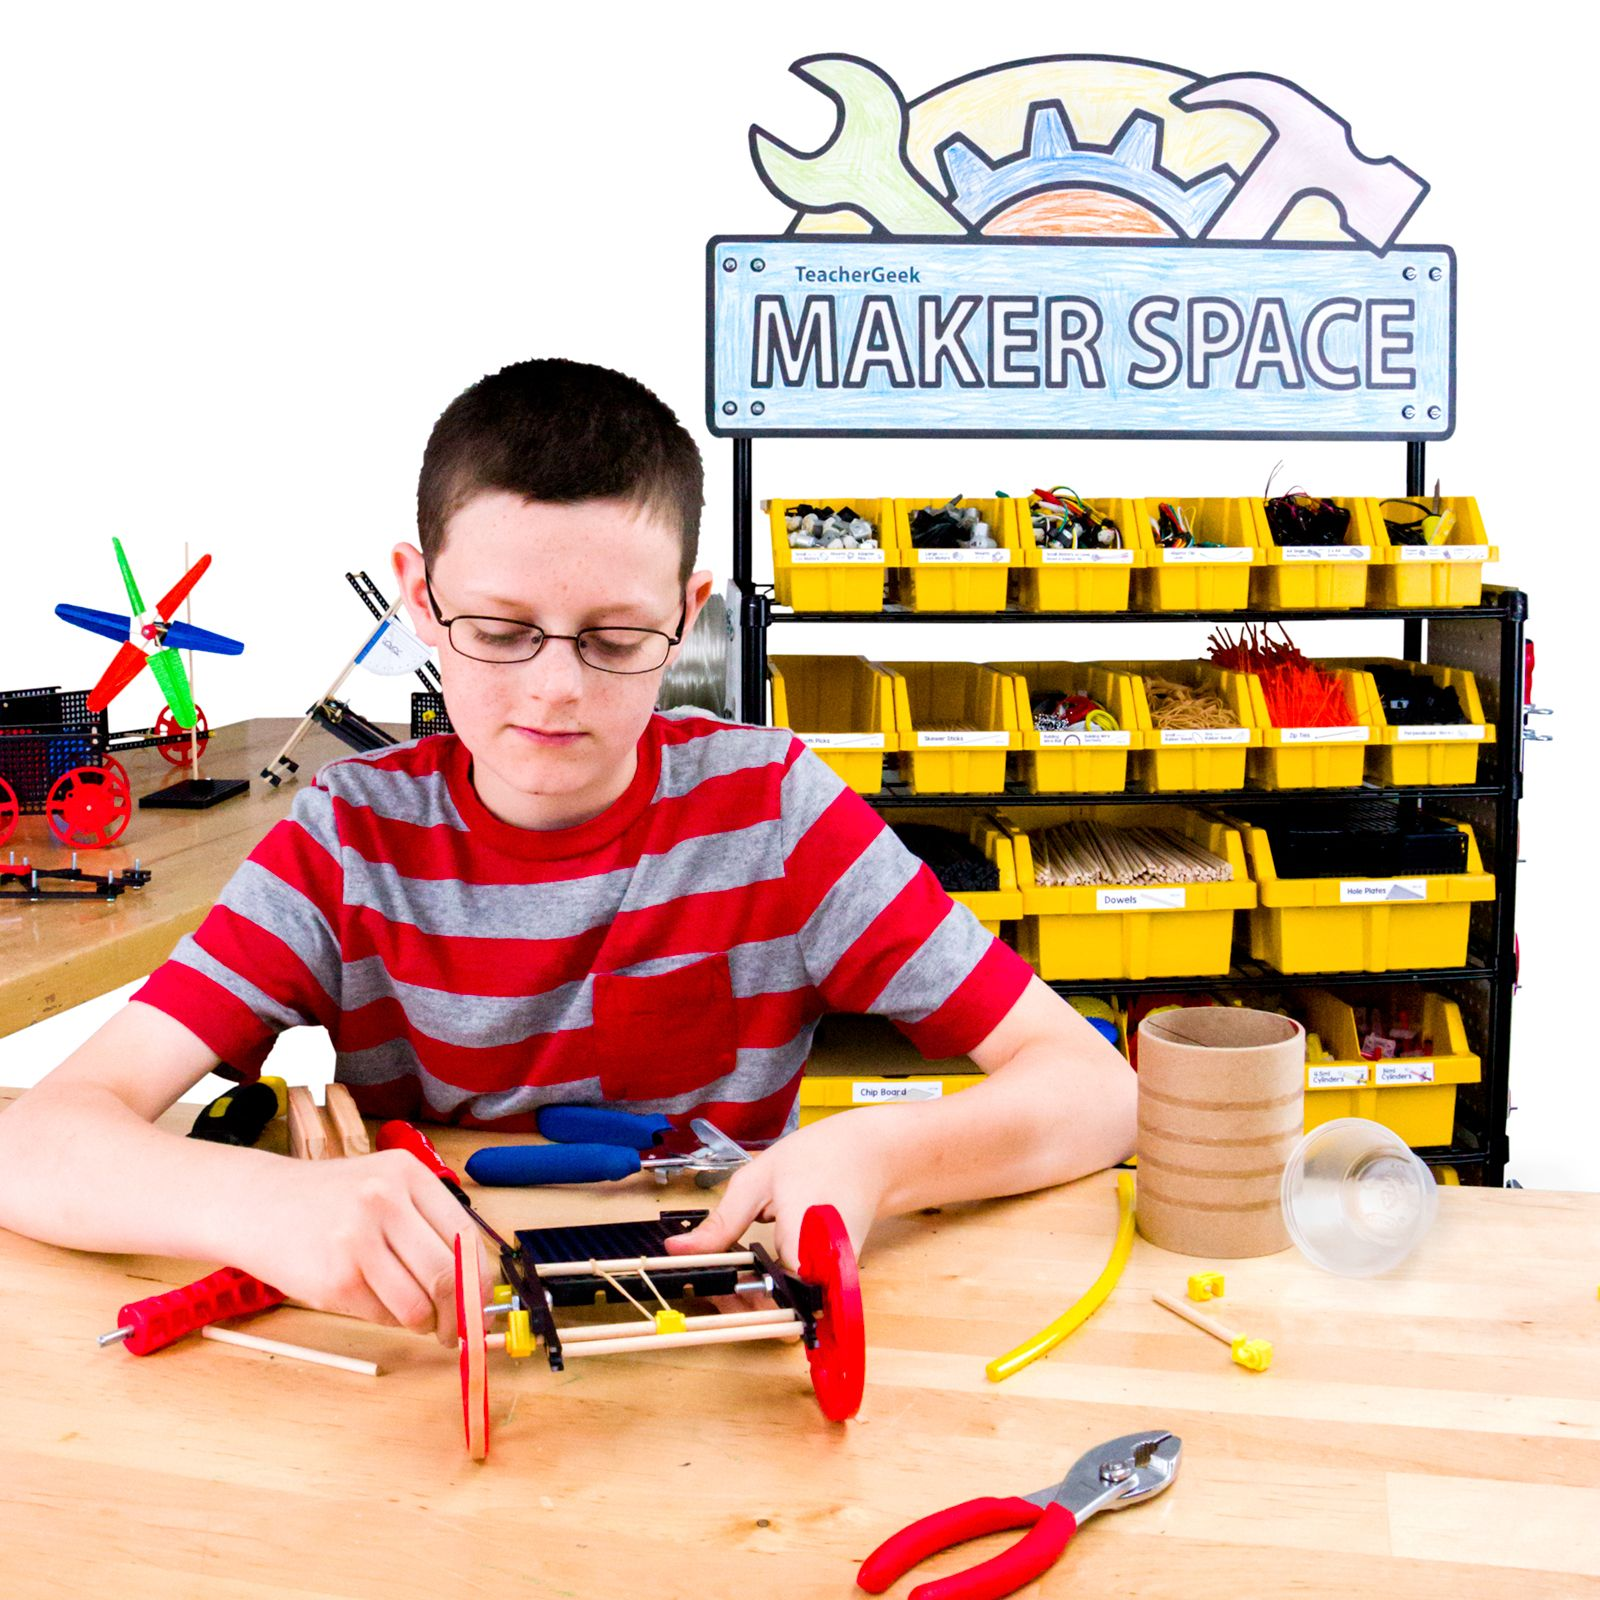 Teachergeek And Maker Carts Are Now Available On Amazon